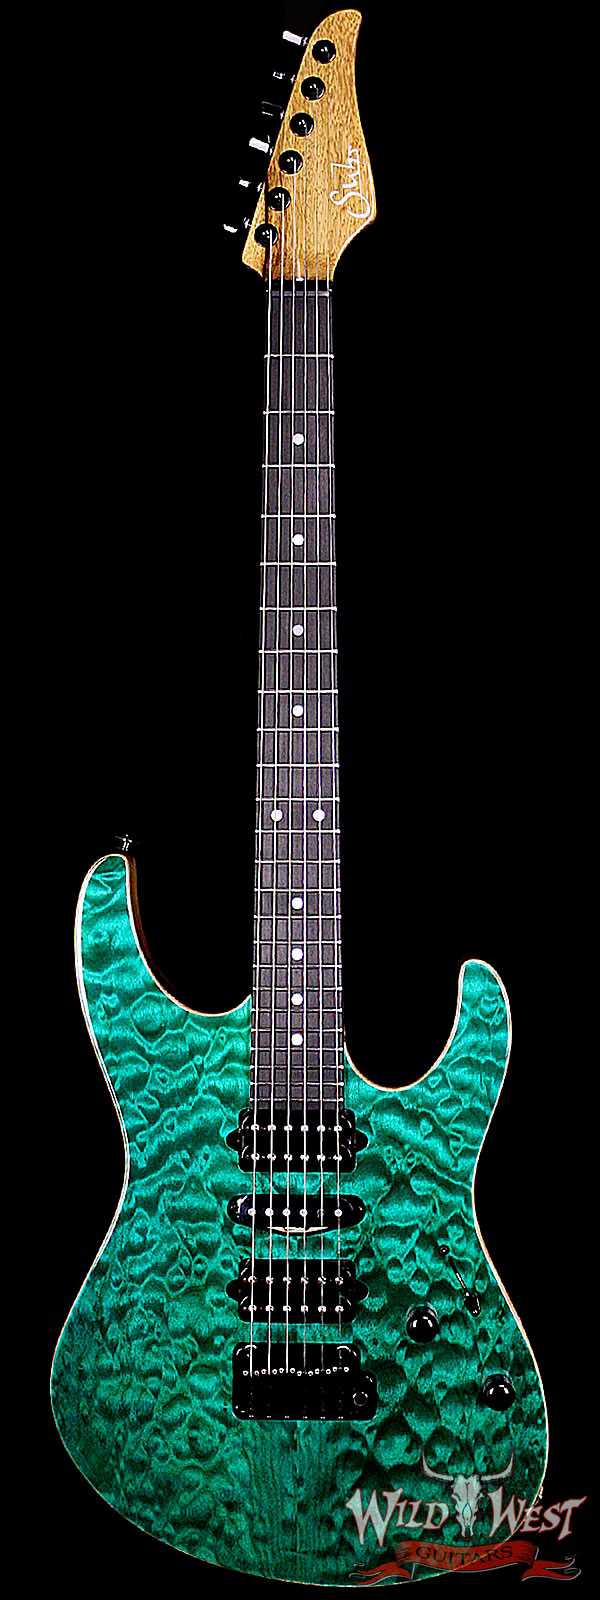 Suhr Modern Quilt Maple w Black Limba Body / Neck Ebony Board Trans Teal